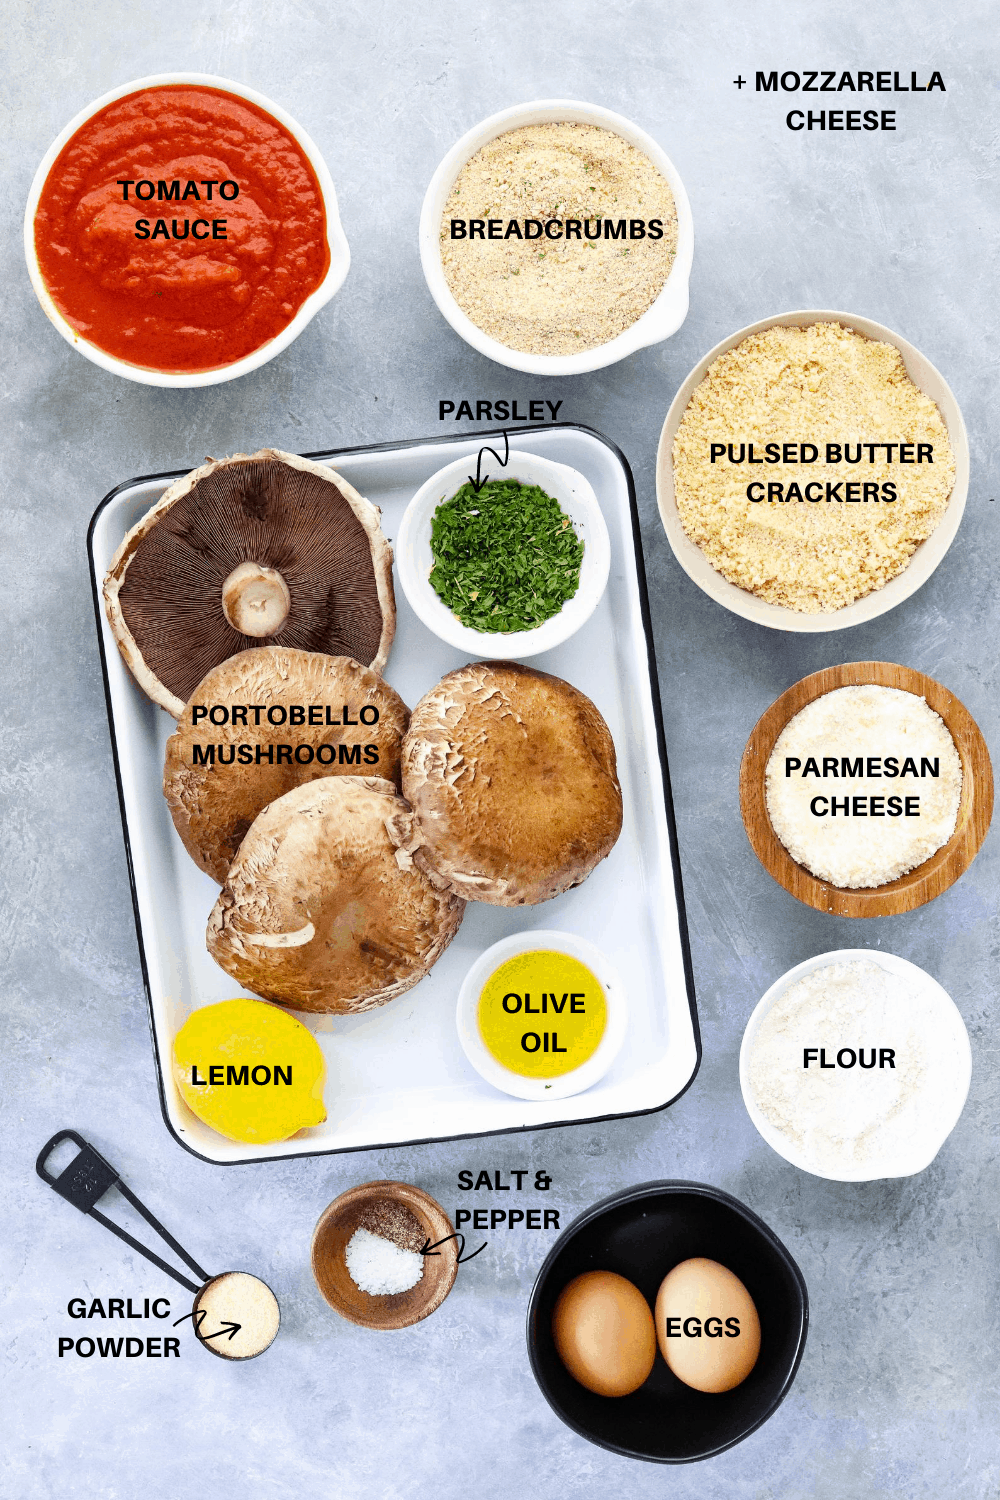 Mushrooms, red sauce, parmesan, breadcrumbs and spices on a gray board